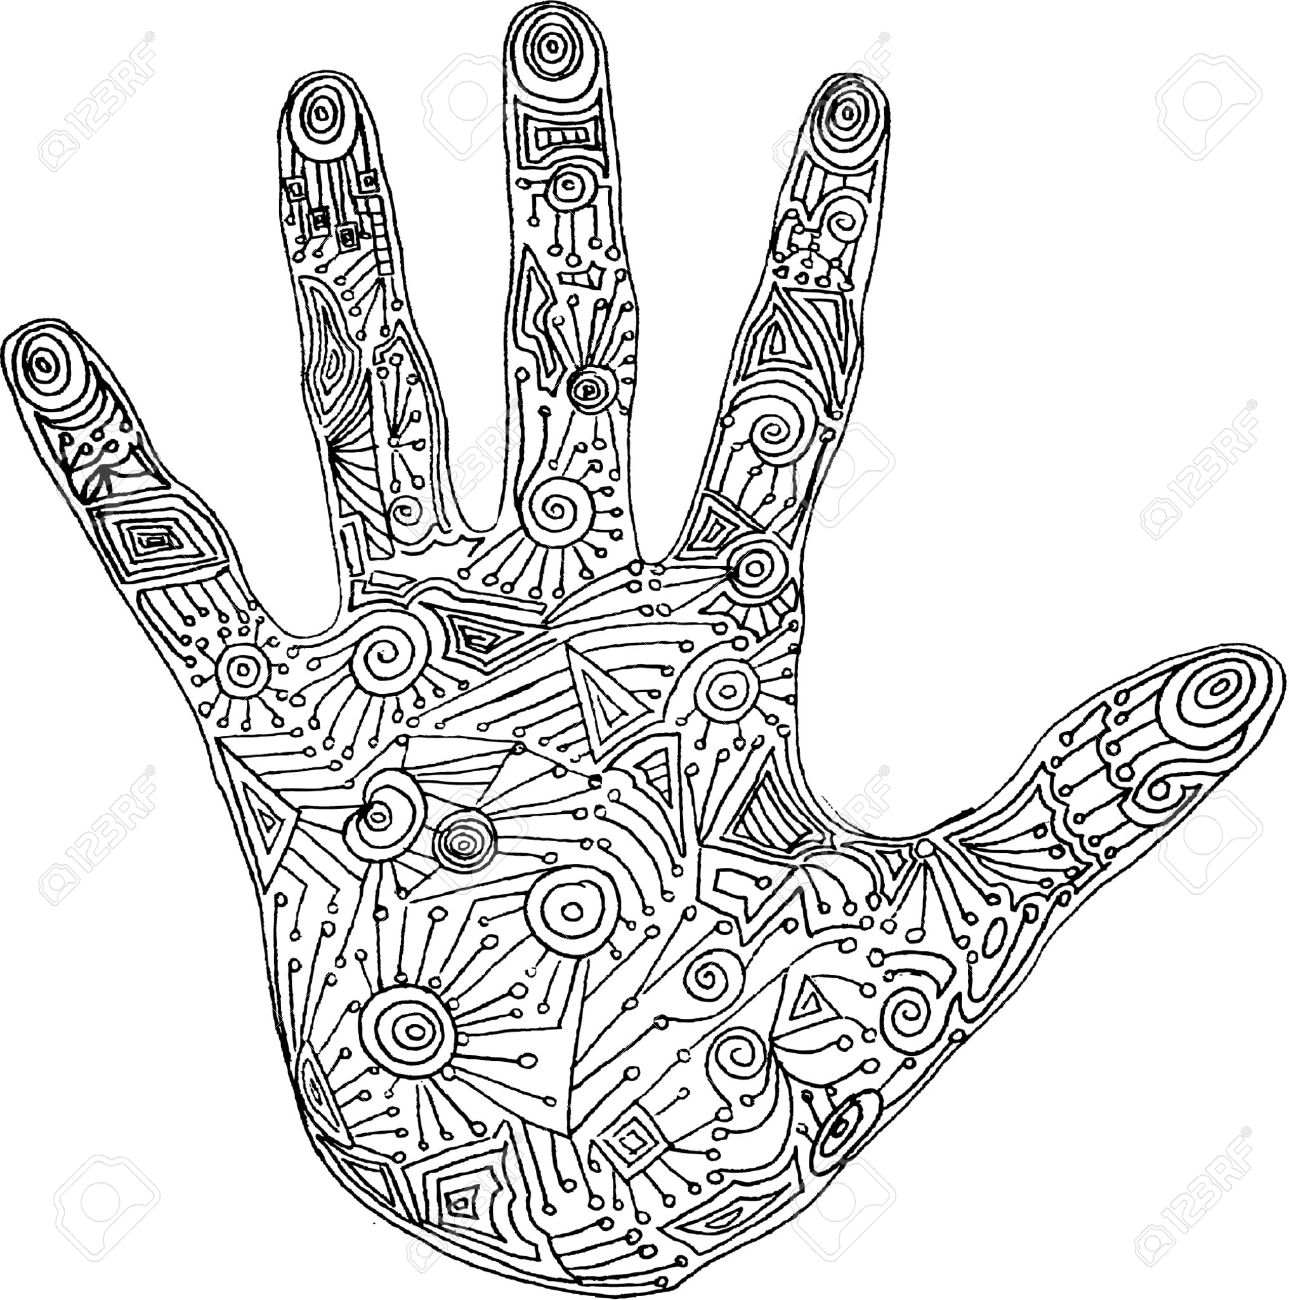 1289x1300 Vector Illustration Of Abstract Hand Unique Royalty Free Cliparts